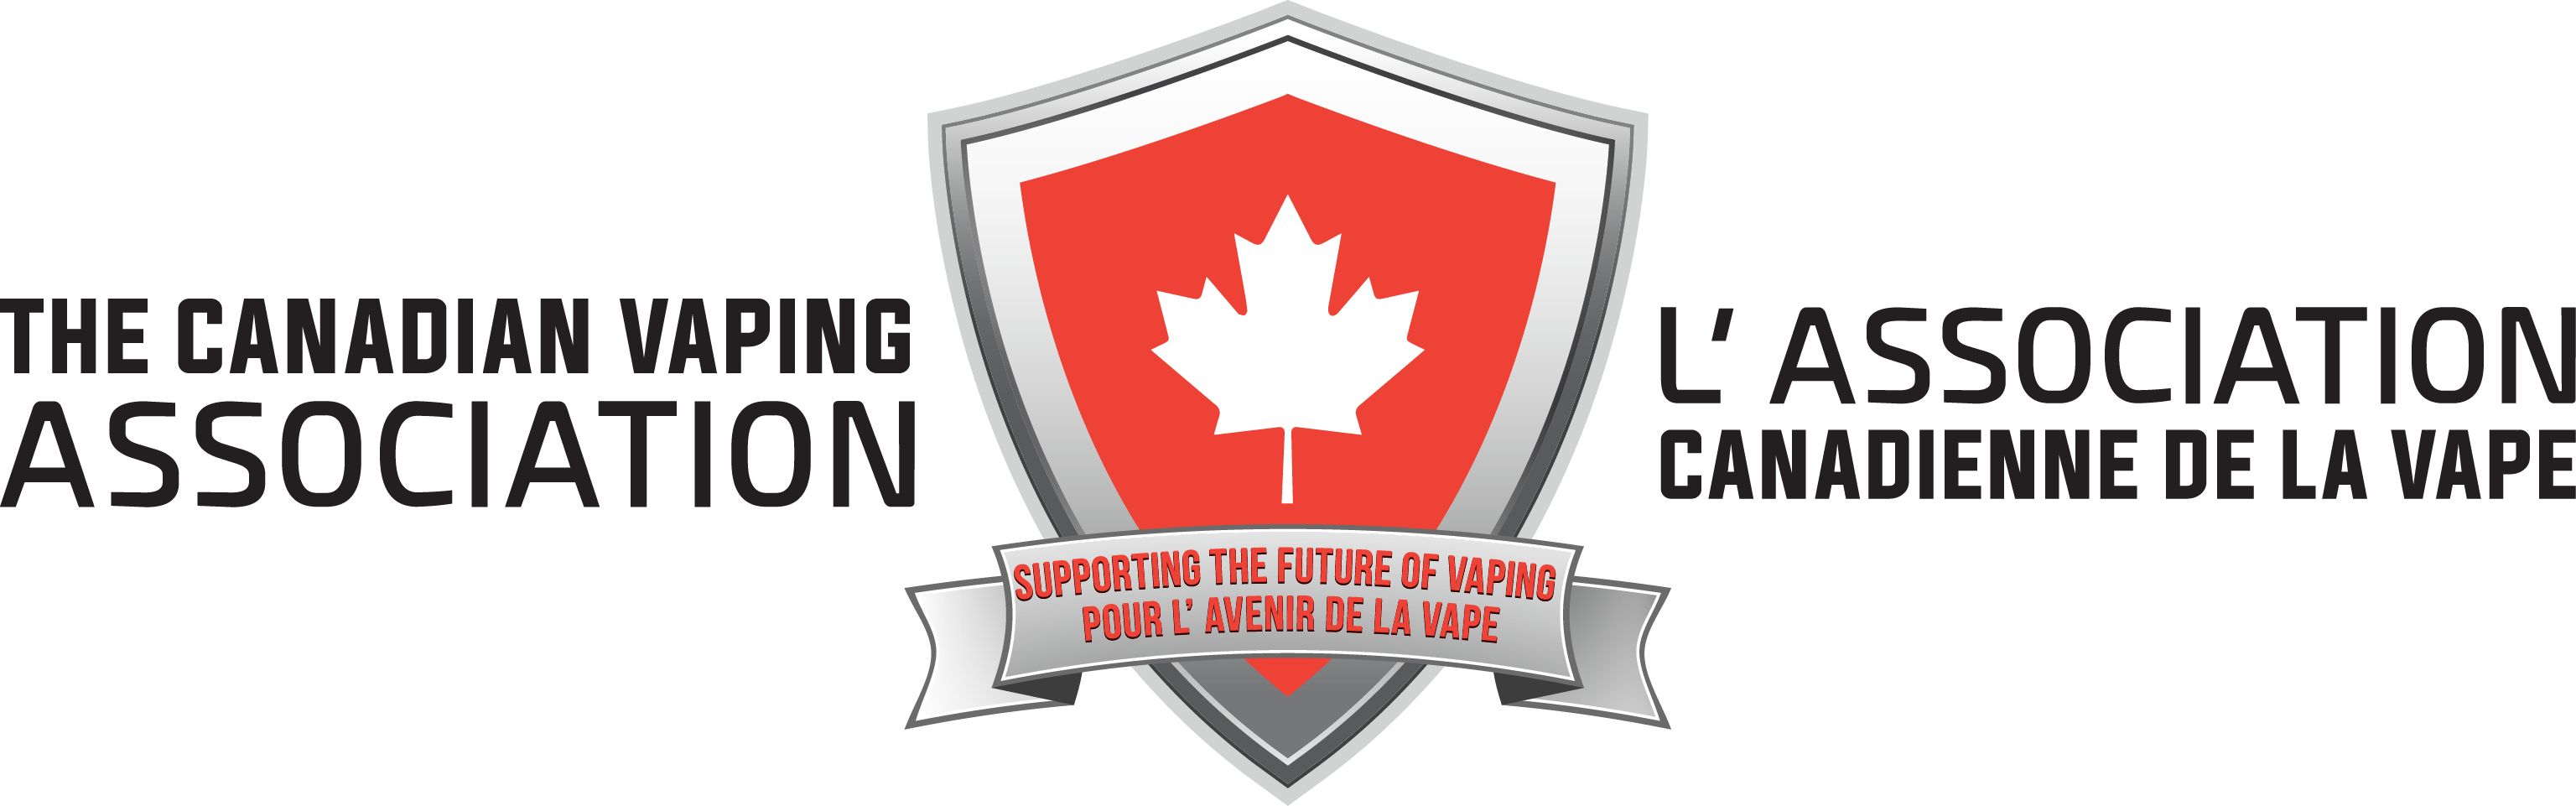 Canadian Vaping Association